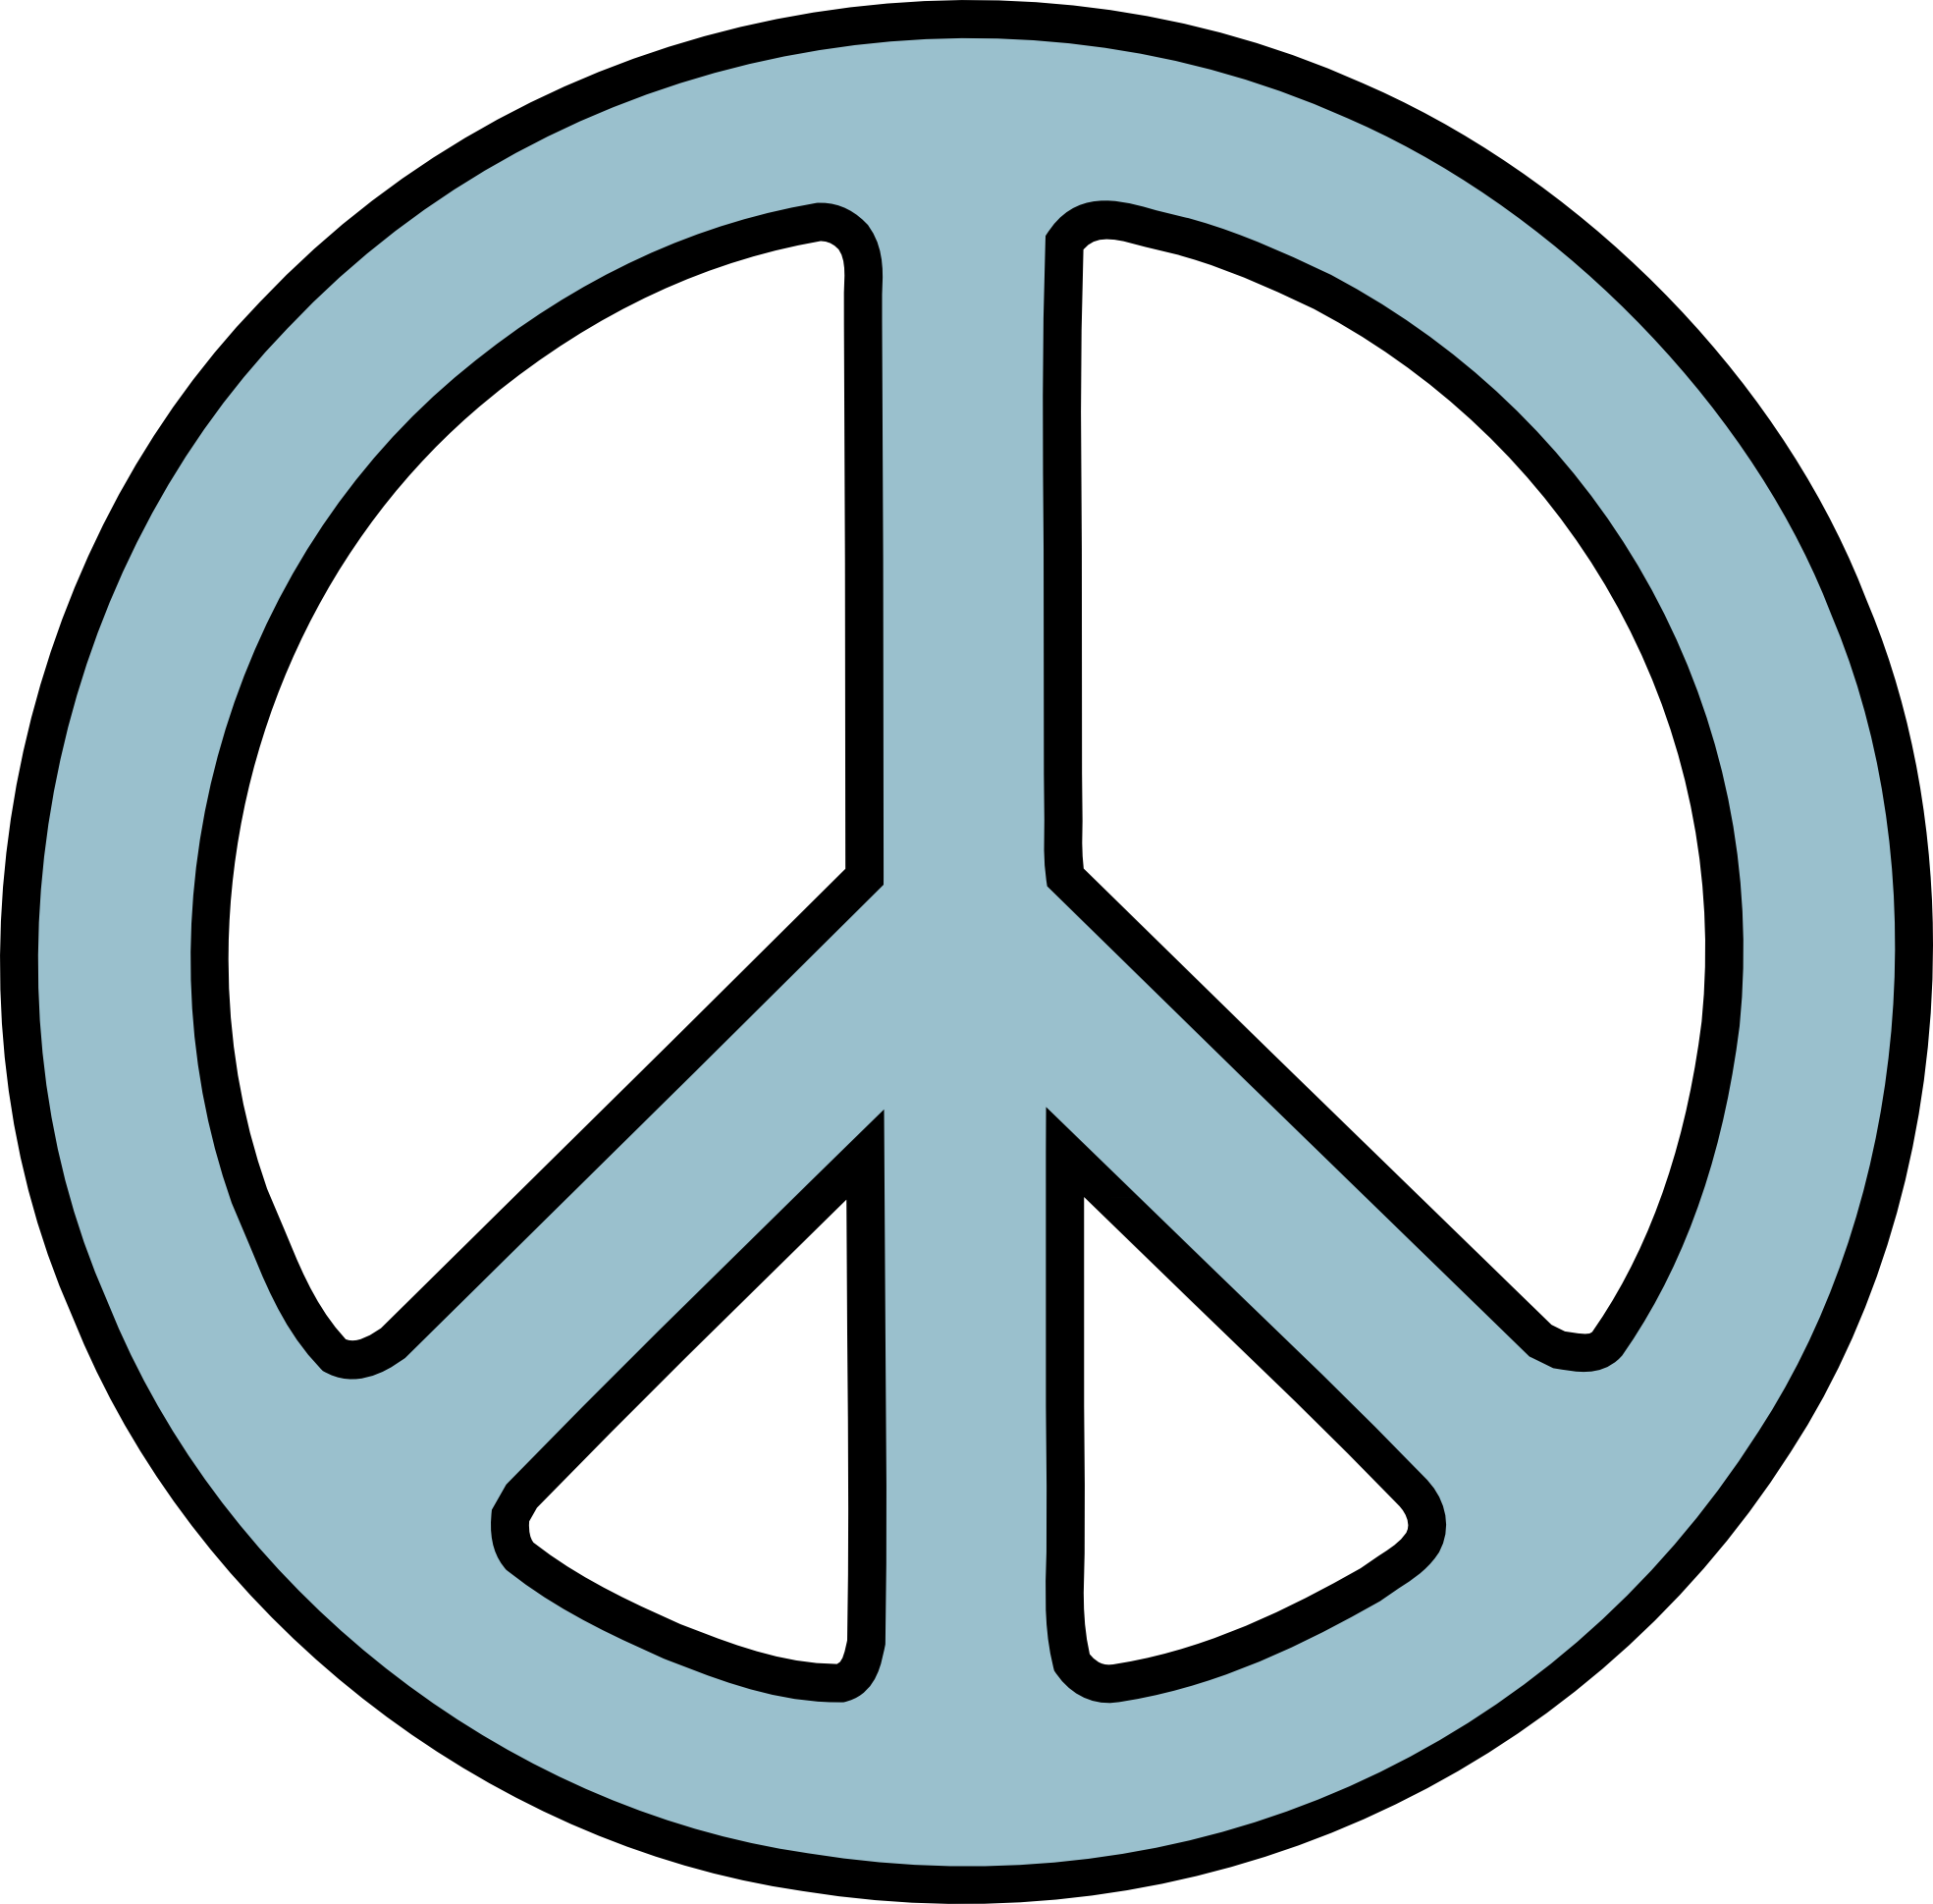 Christmas peace sign clipart image freeuse download Peace Signs Clip Art Sign 3 Light Blue Christmas Xmas On clipart ... image freeuse download